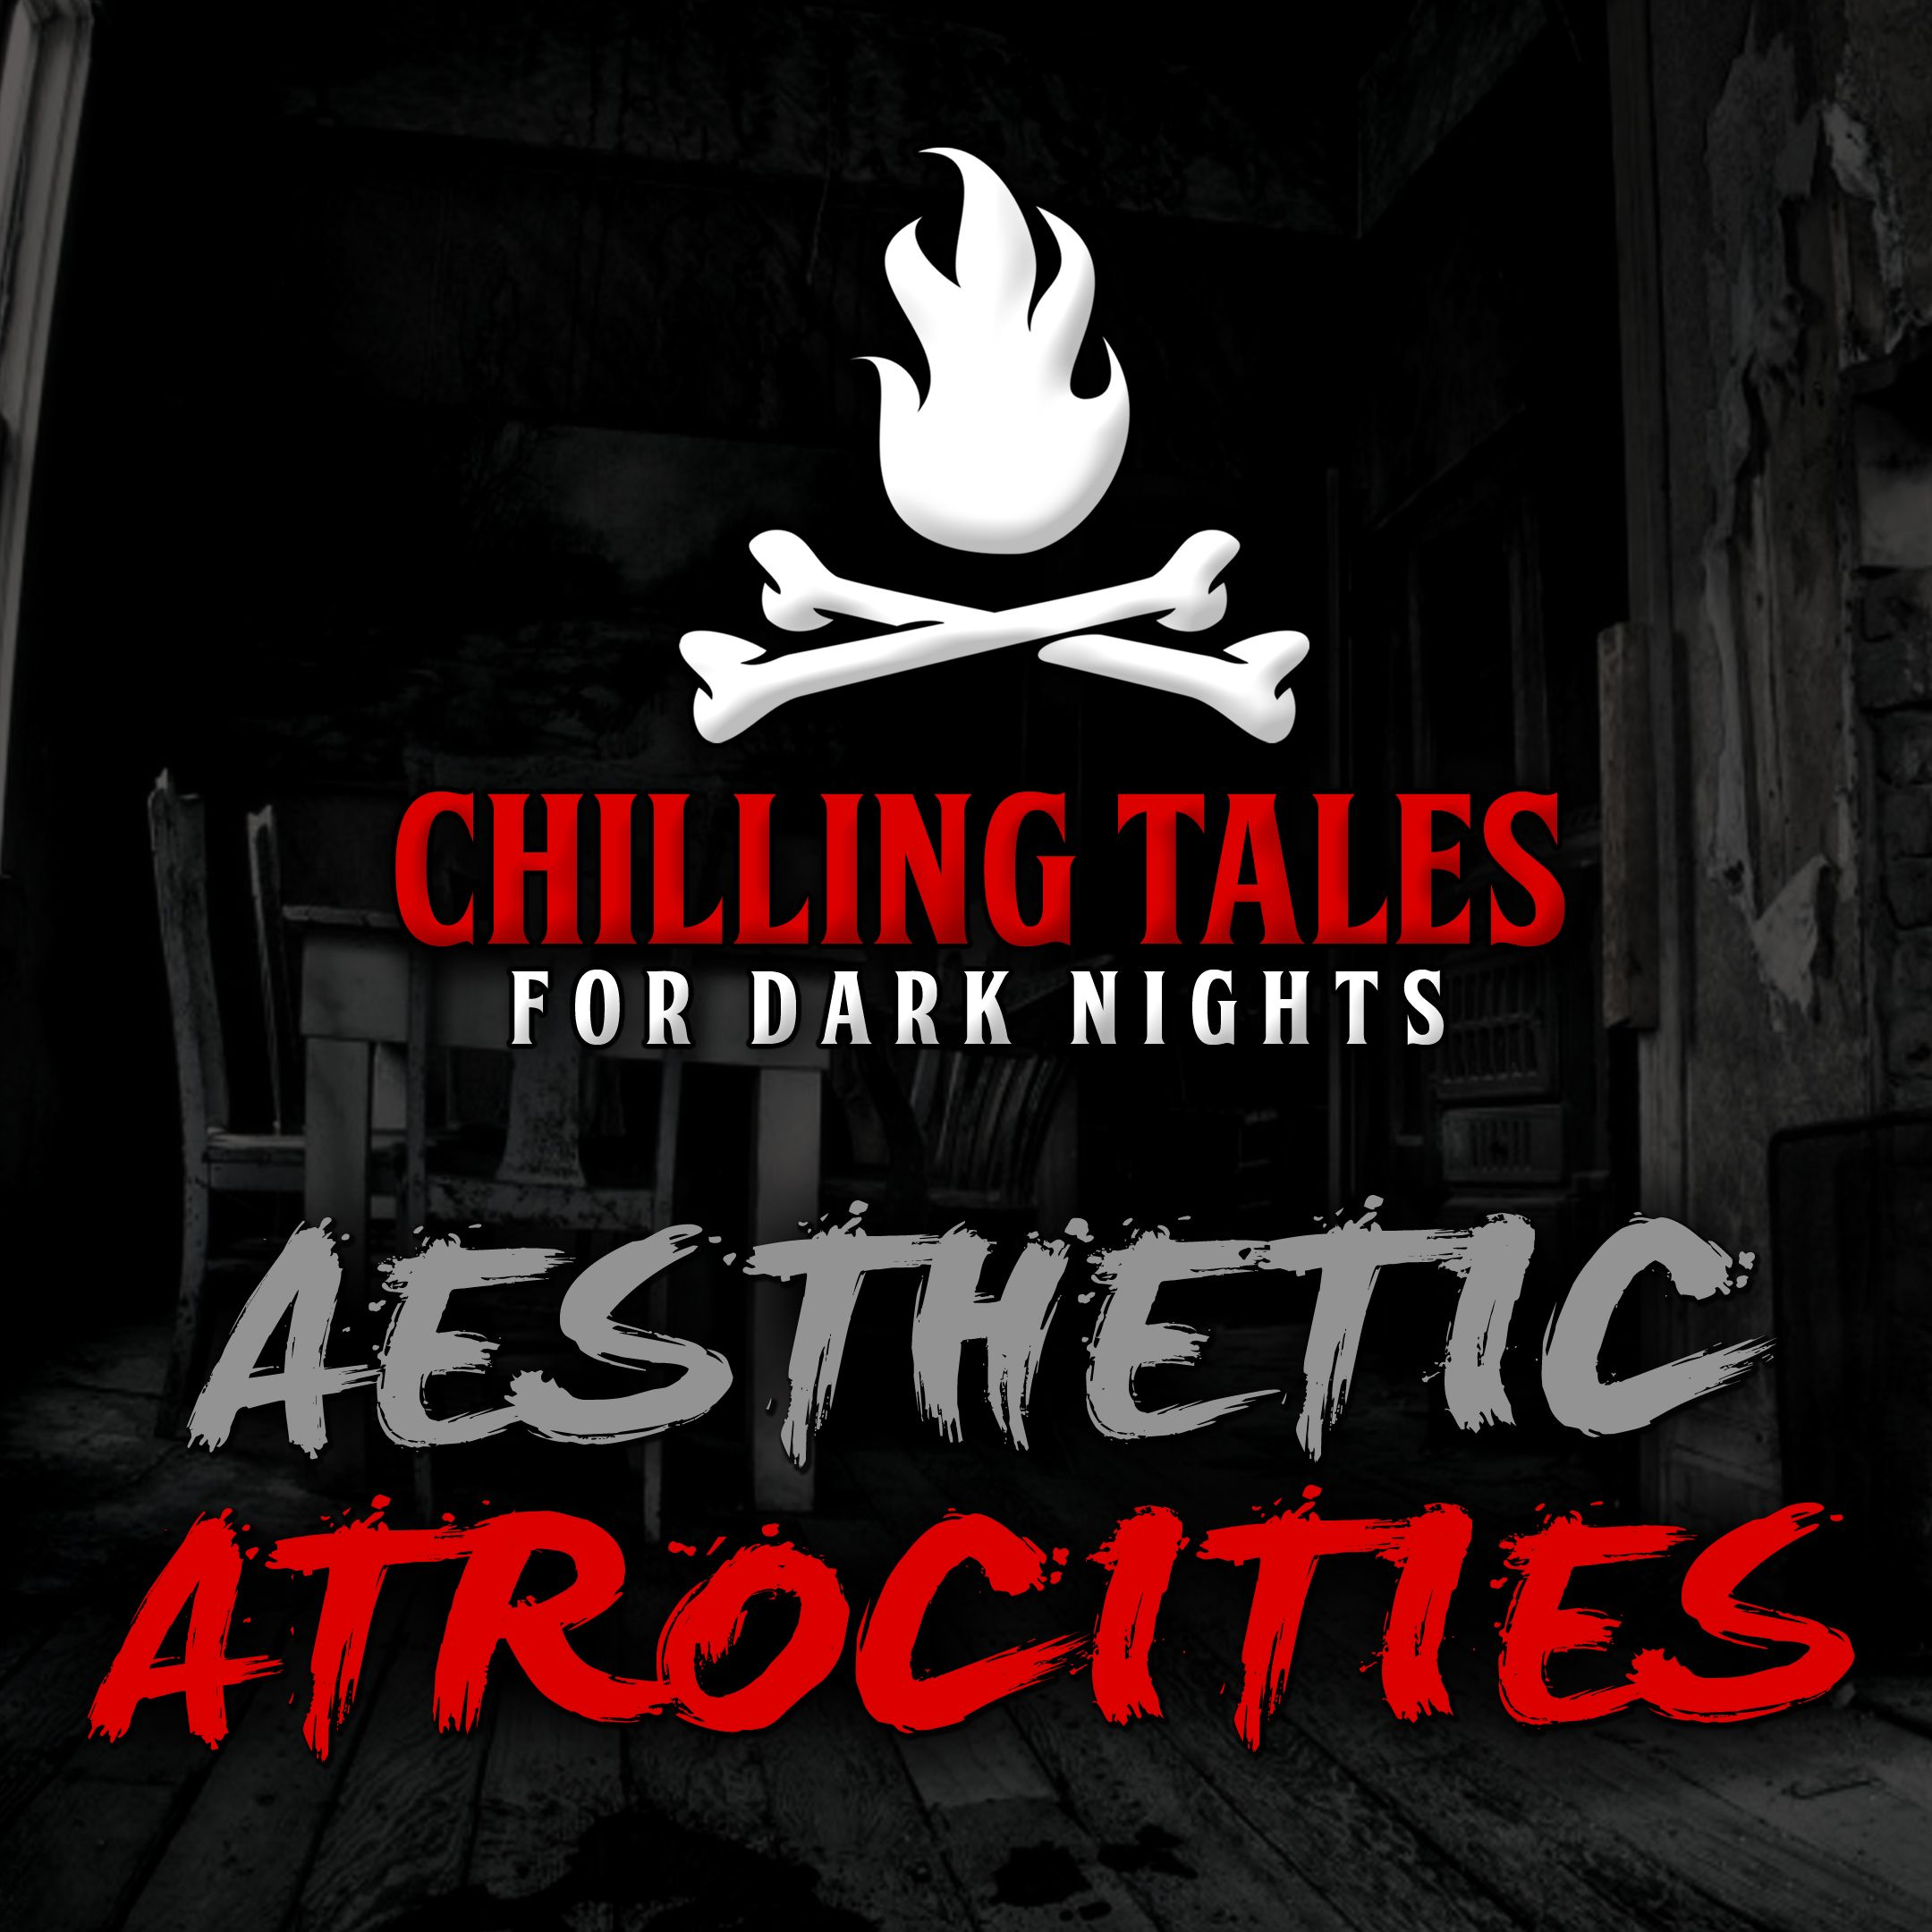 78: Aesthetic Atrocities – Chilling Tales for Dark Nights